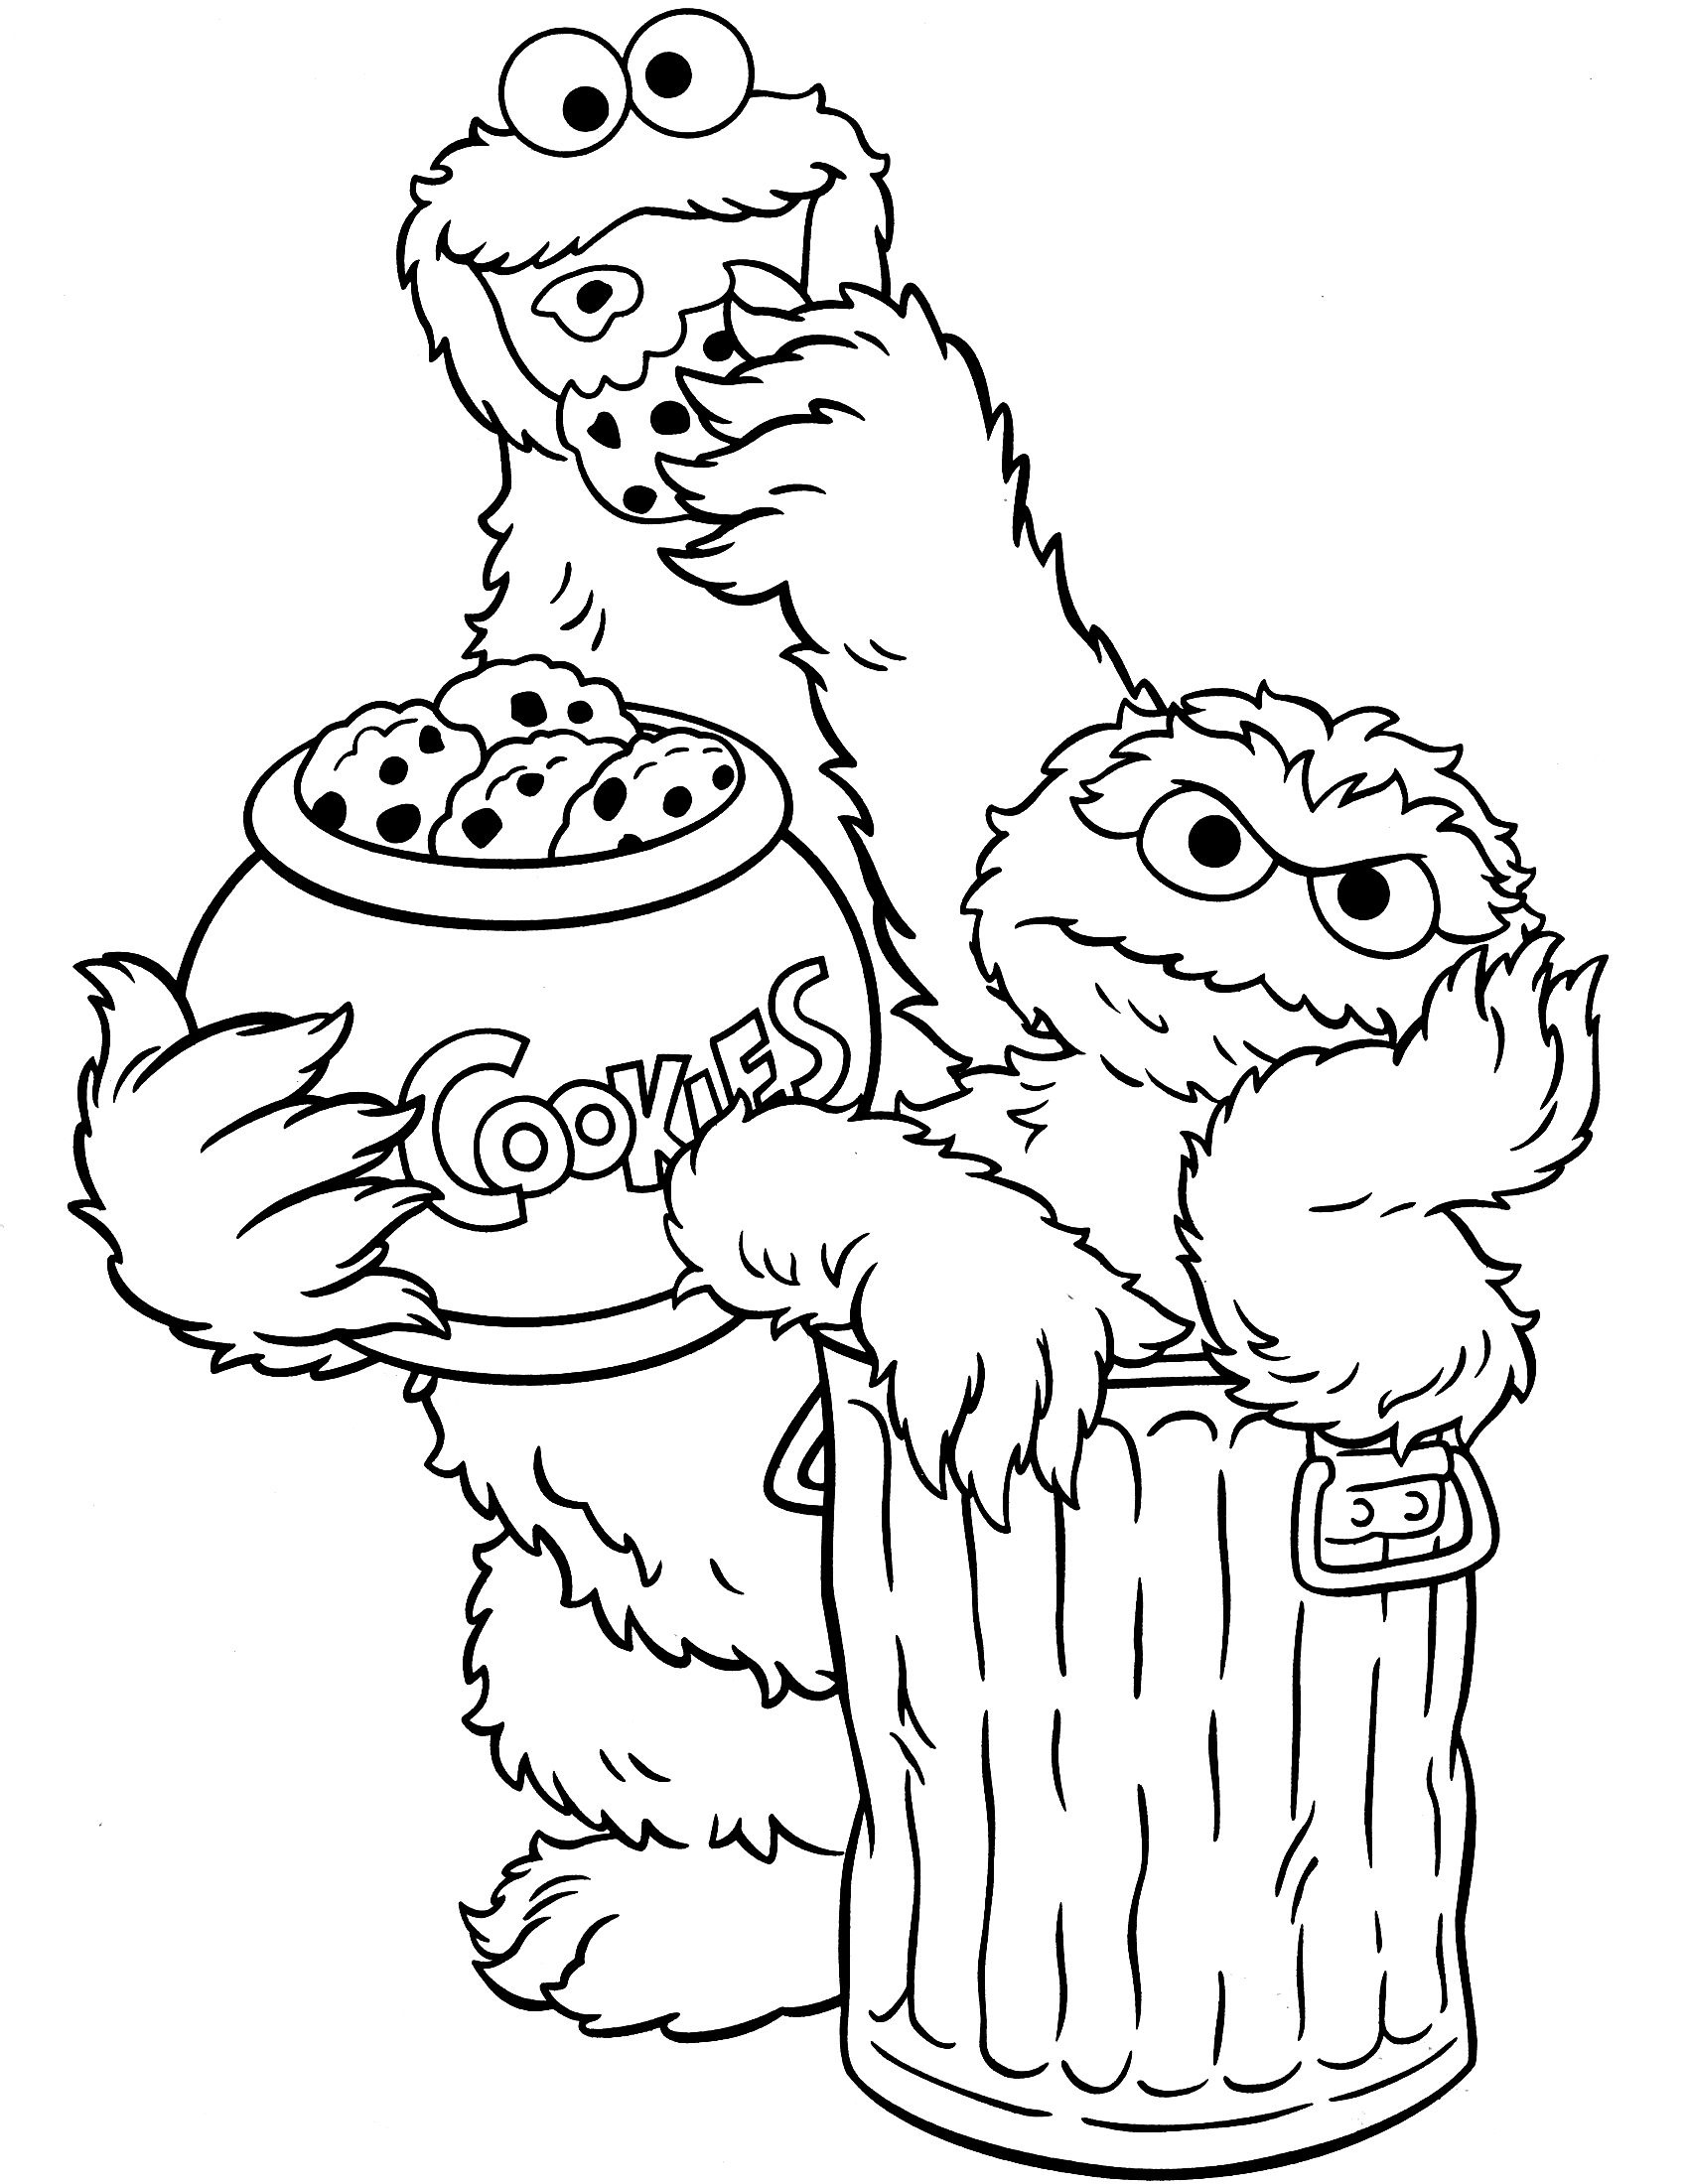 Sesame Street Coloring Pages - Google Search | Seseme Party | Sesame - Free Printable Coloring Pages Sesame Street Characters